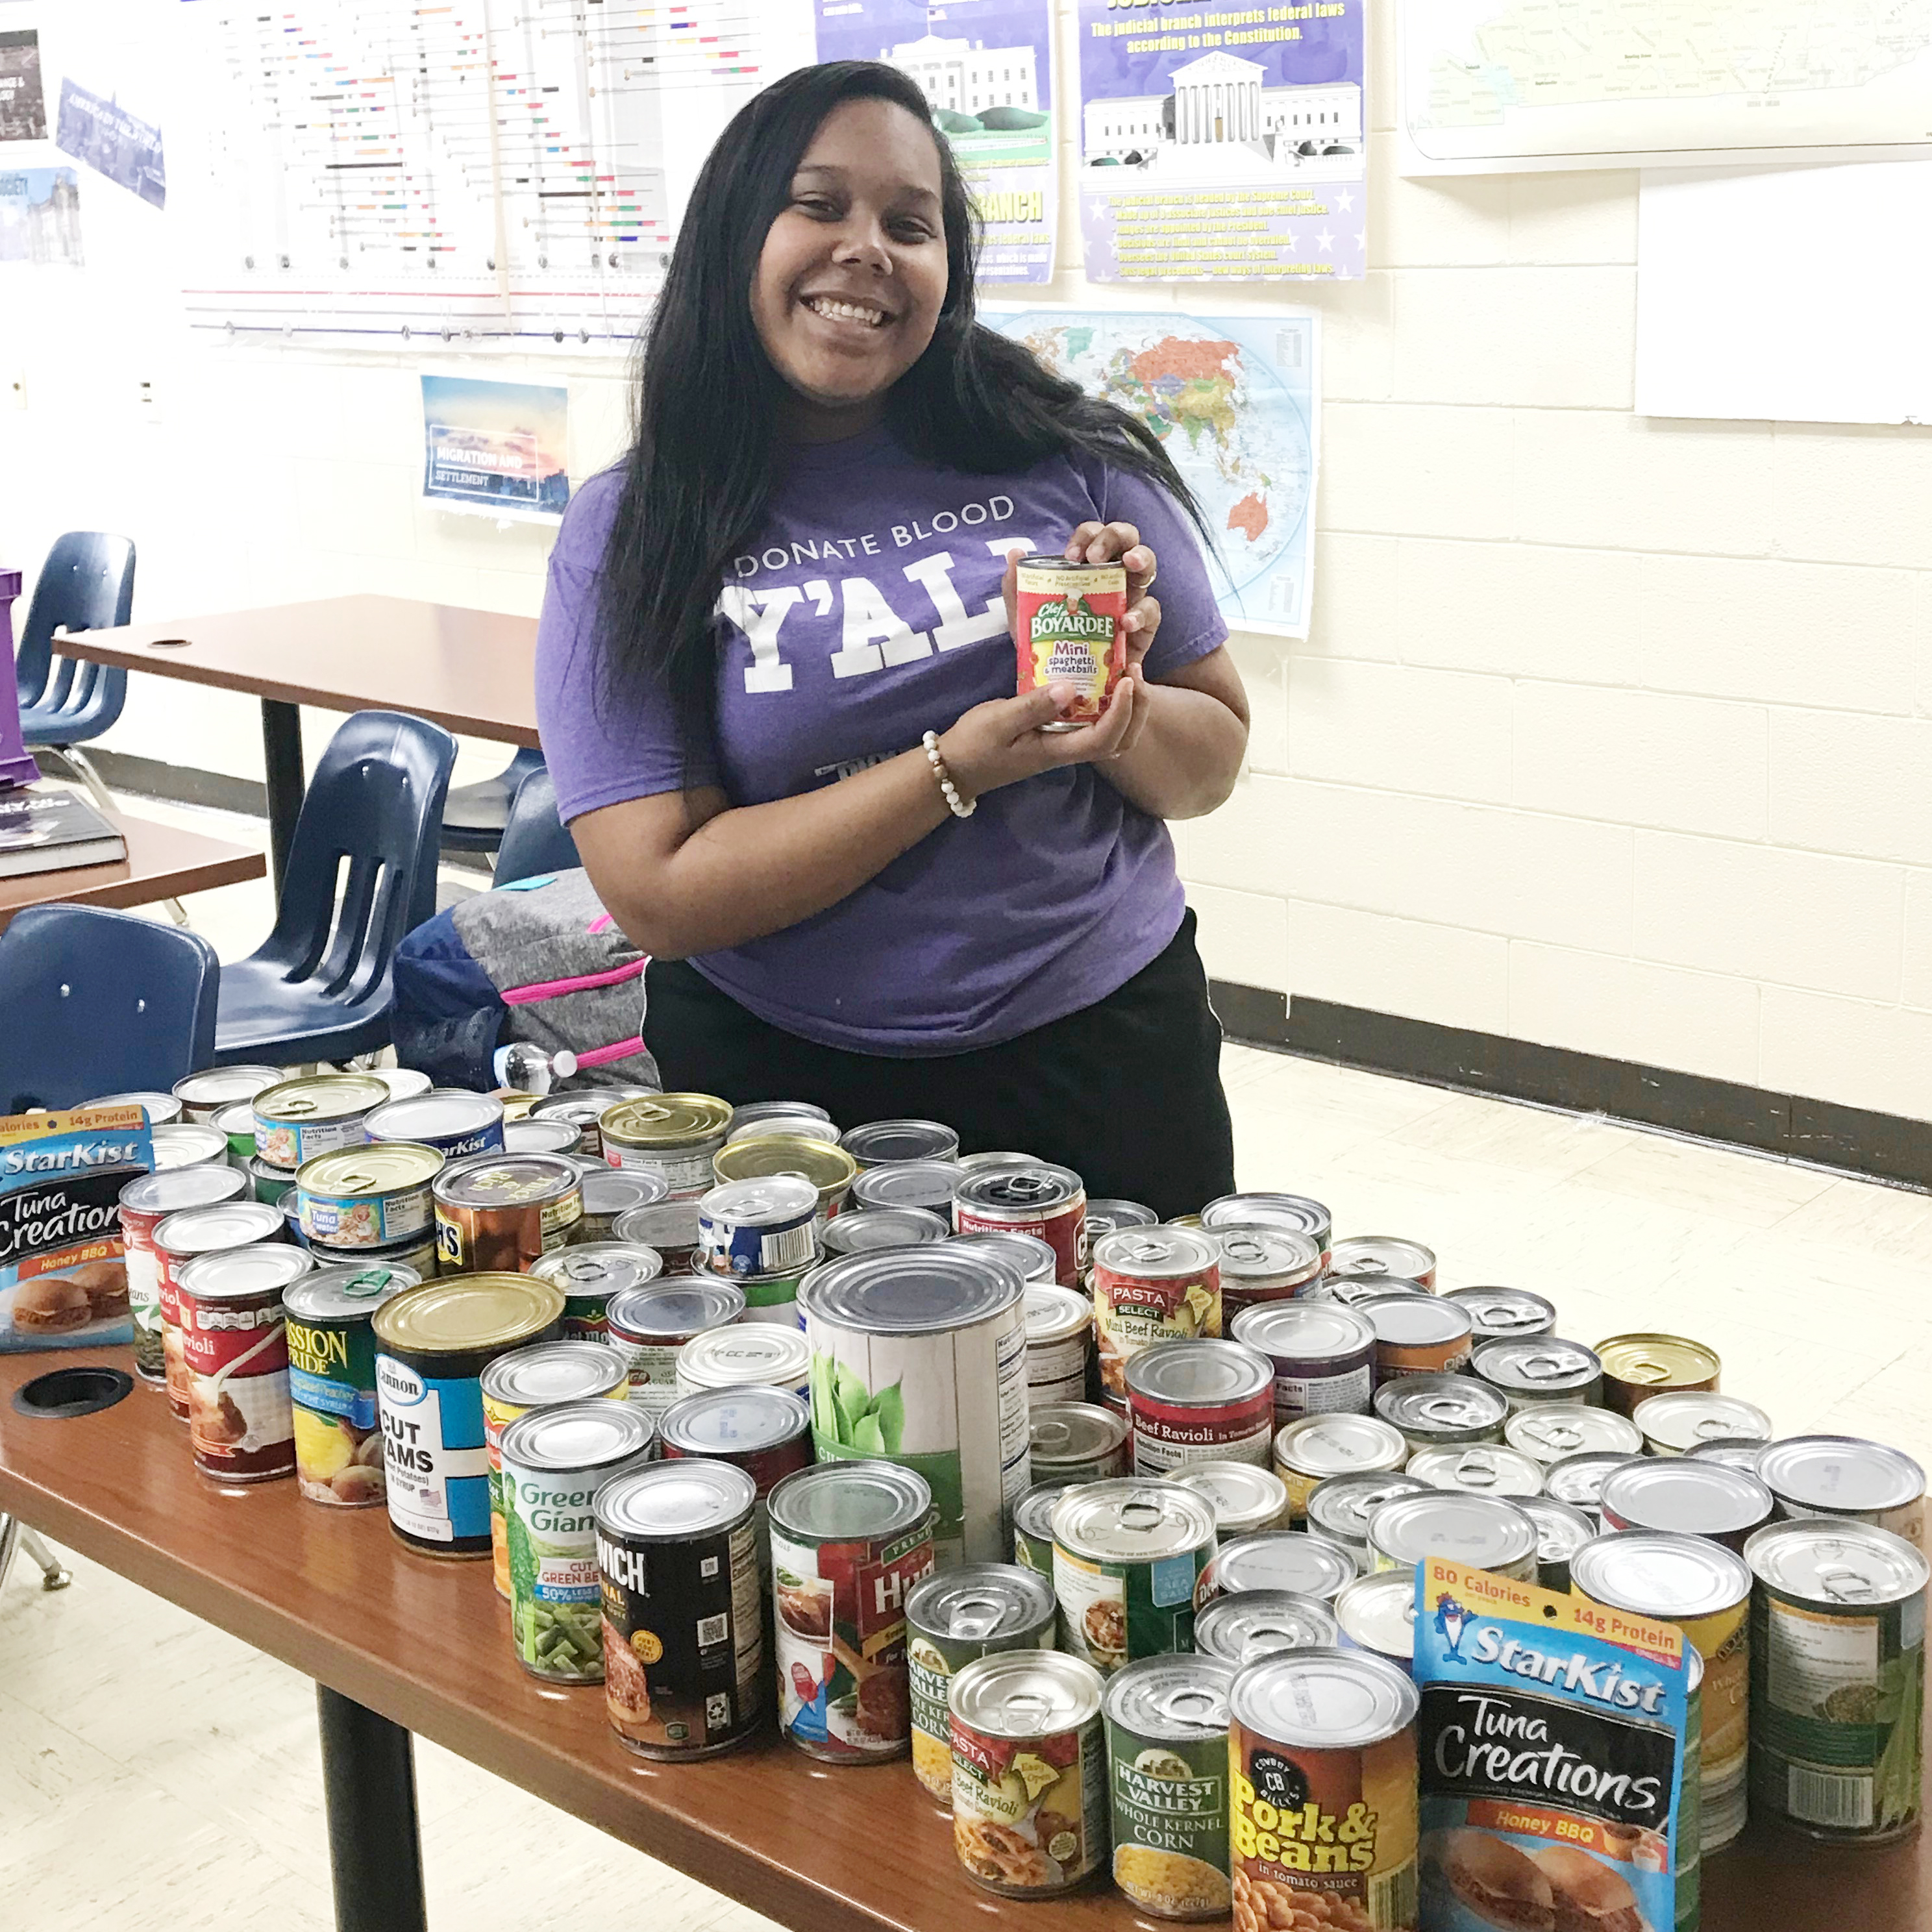 CHS junior Zaria Cowan organized a canned food drive for the Campbellsville High School Y Club. In all, 107 cans were collected and will be donated to the Taylor County Food Pantry.